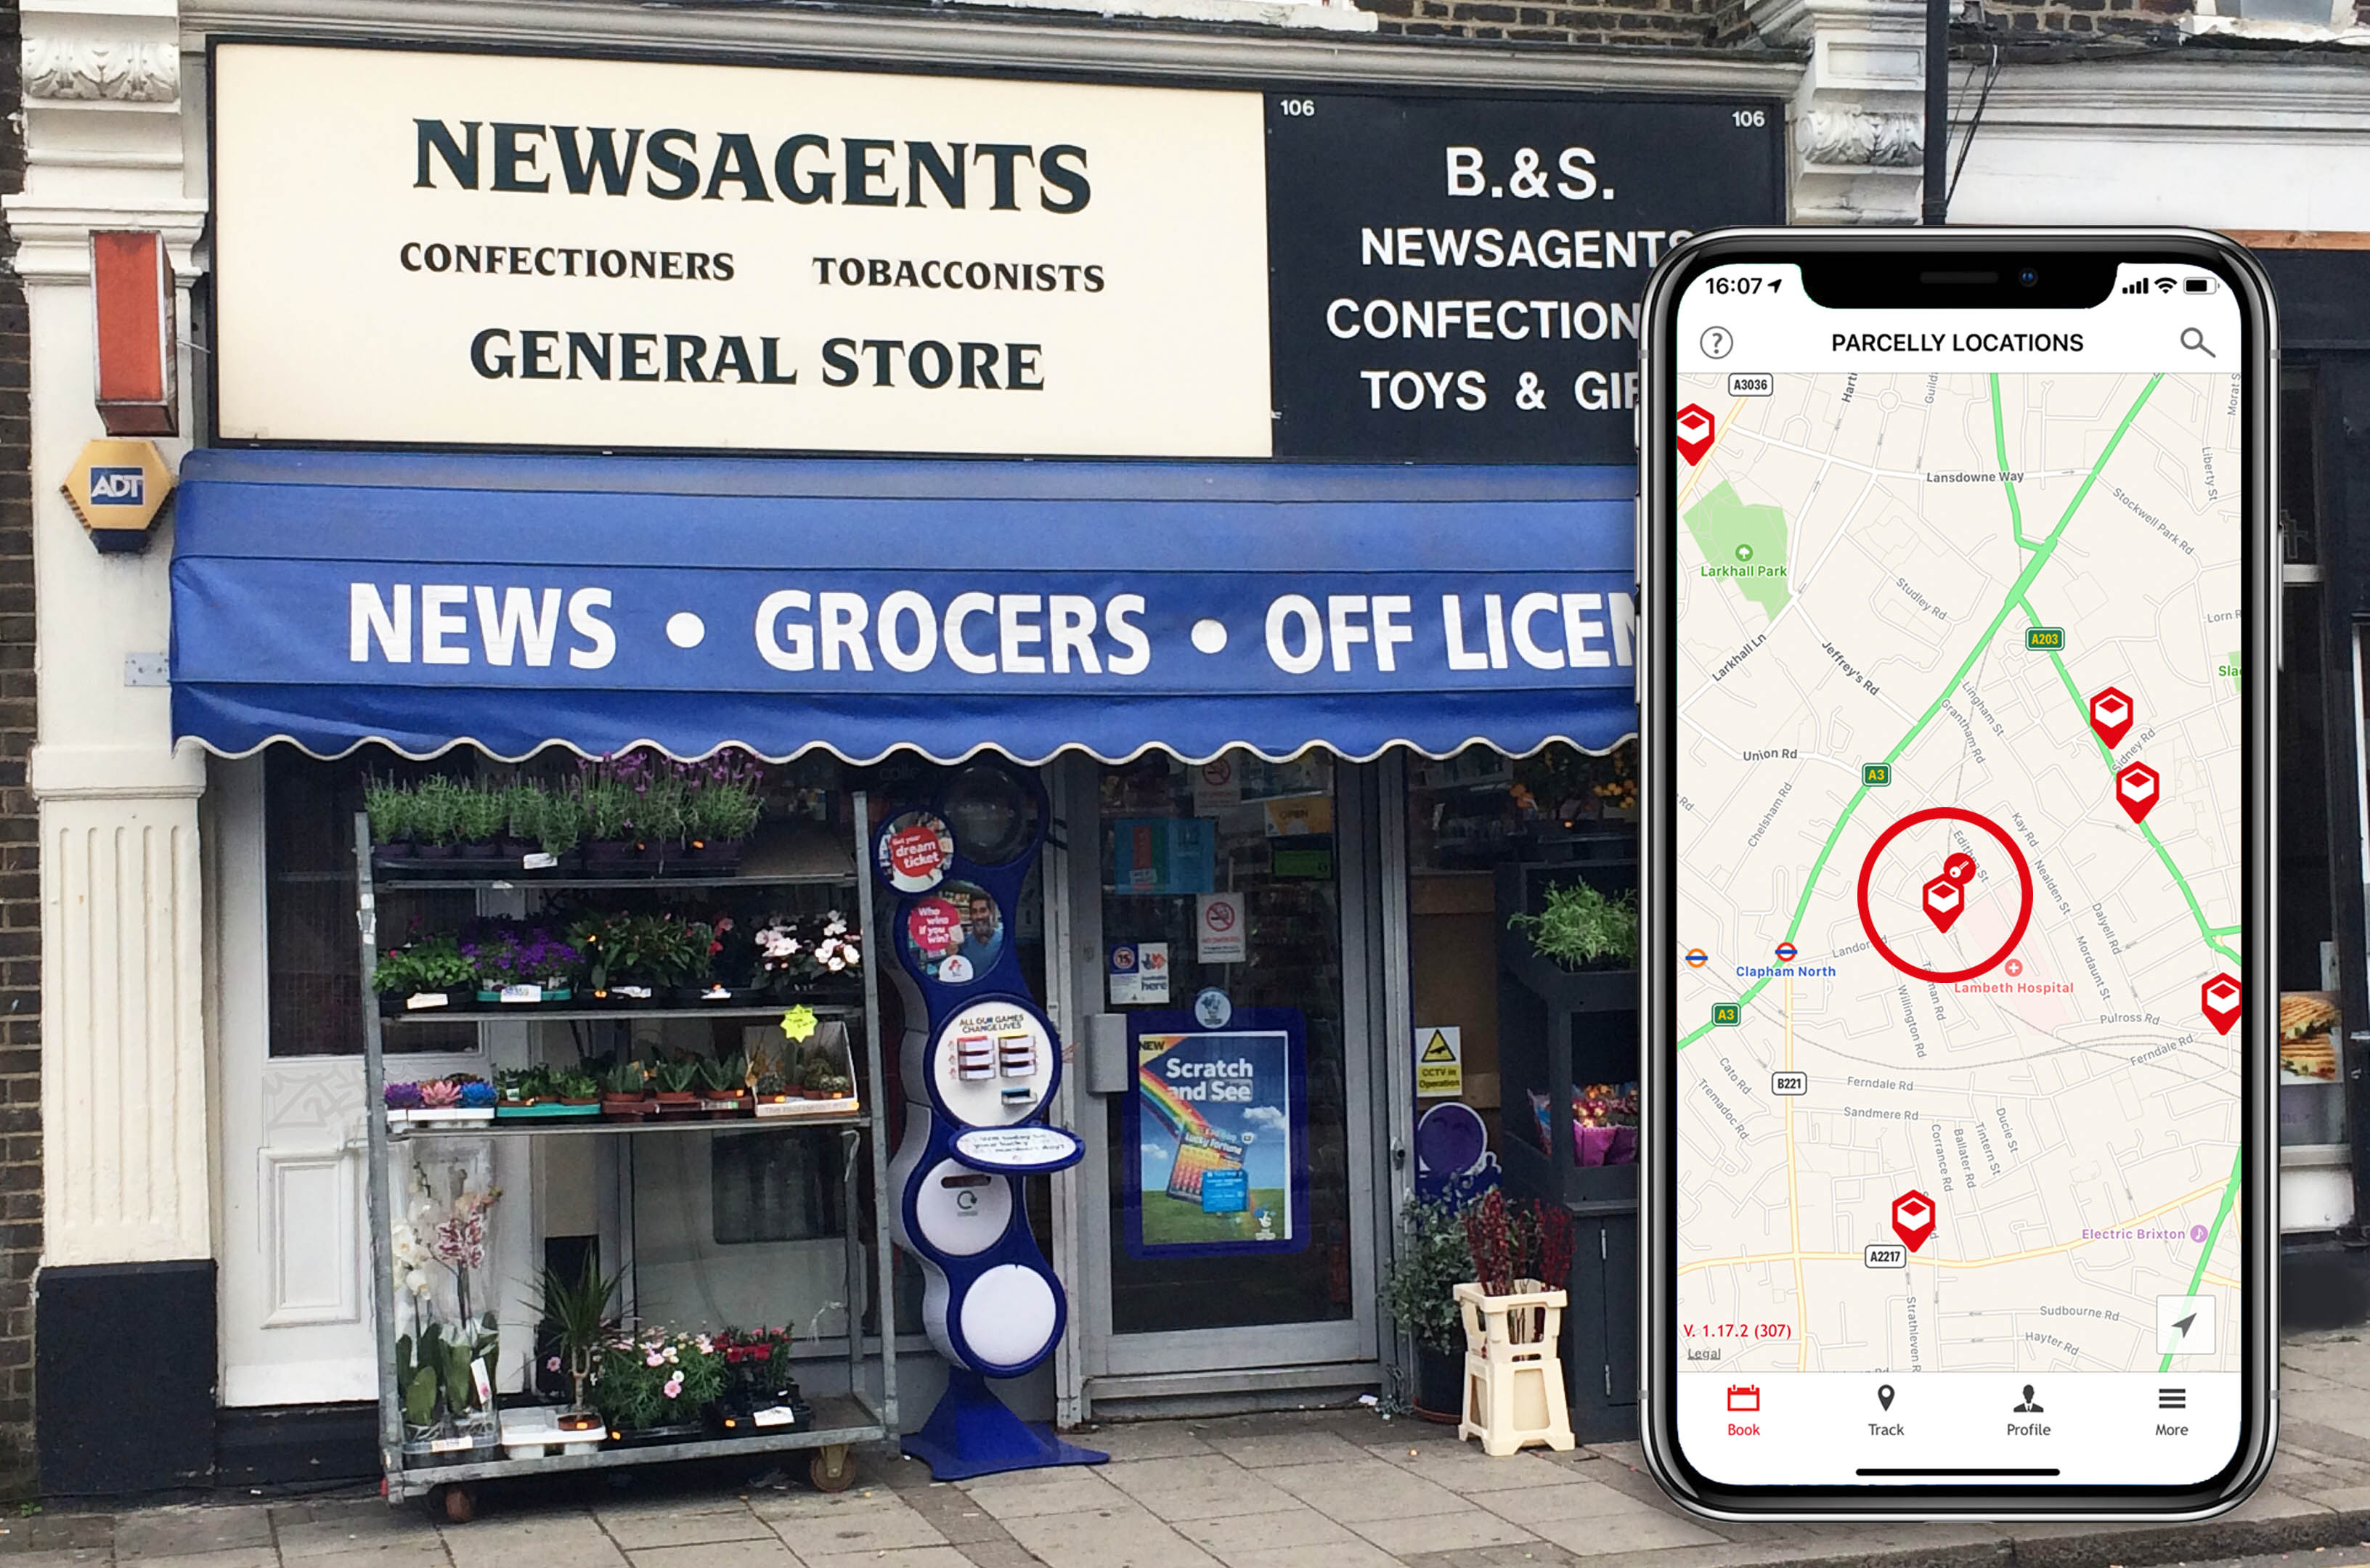 Parcelly Location of the Month BS Newsagents Storefront with iPhone